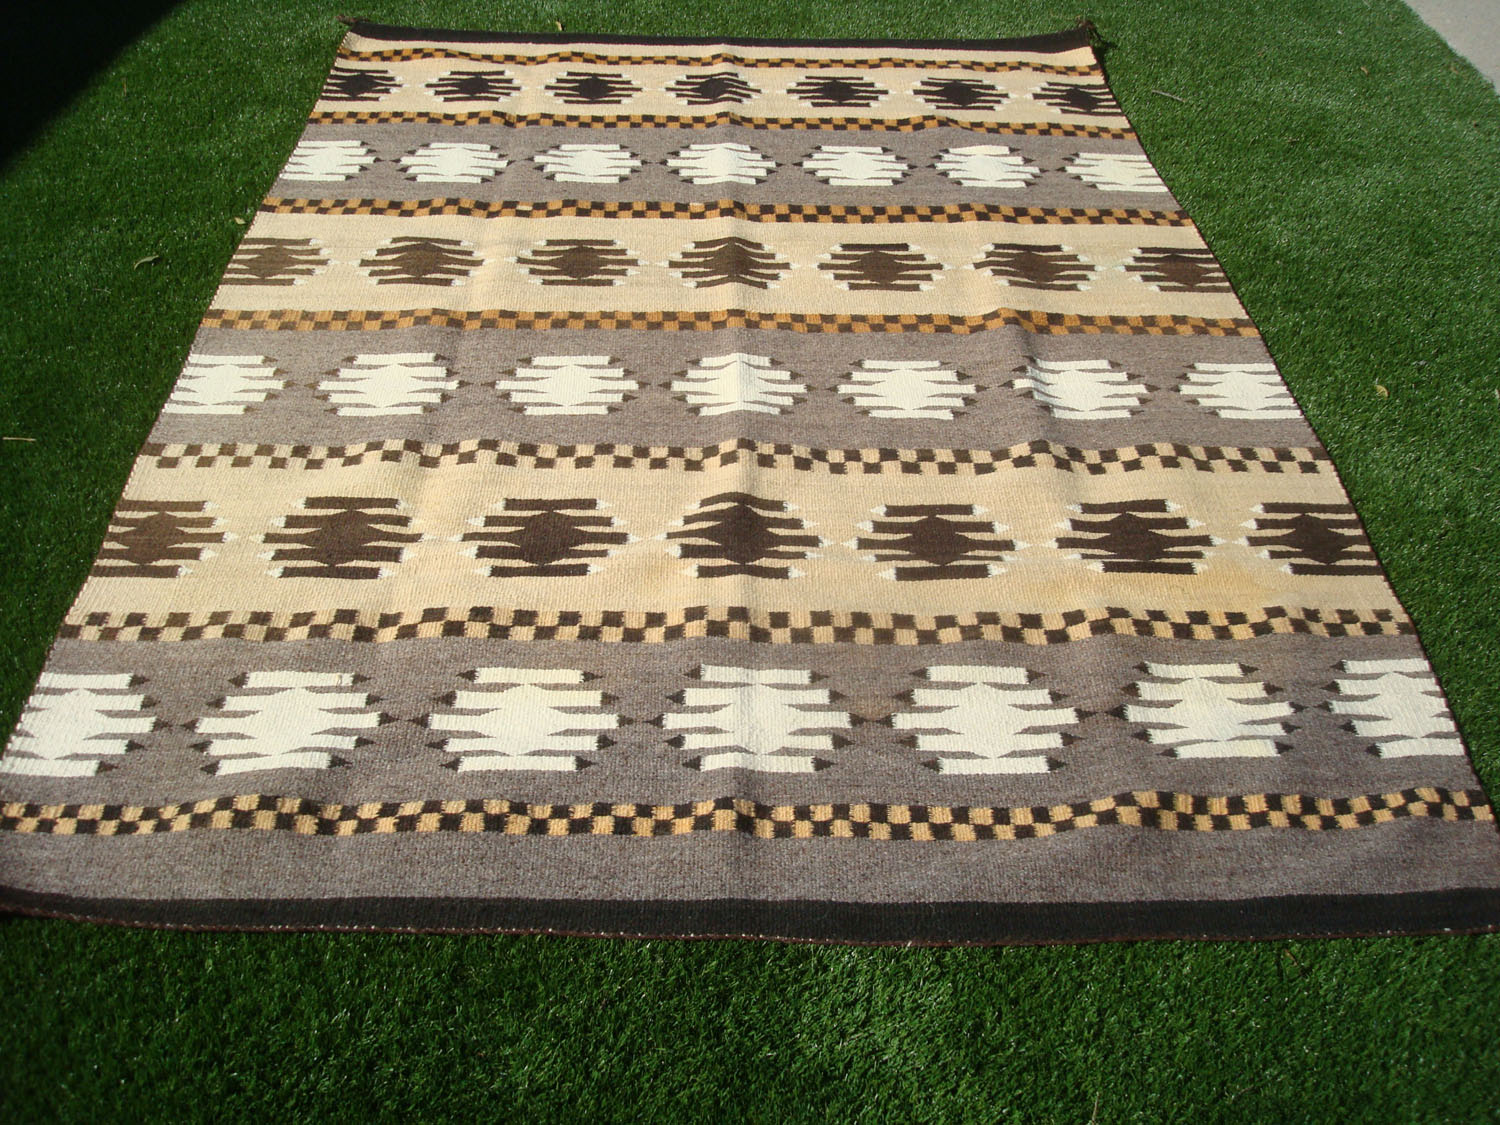 native american indian and navajo rugs and textiles a beautiful navajo textile or rug with